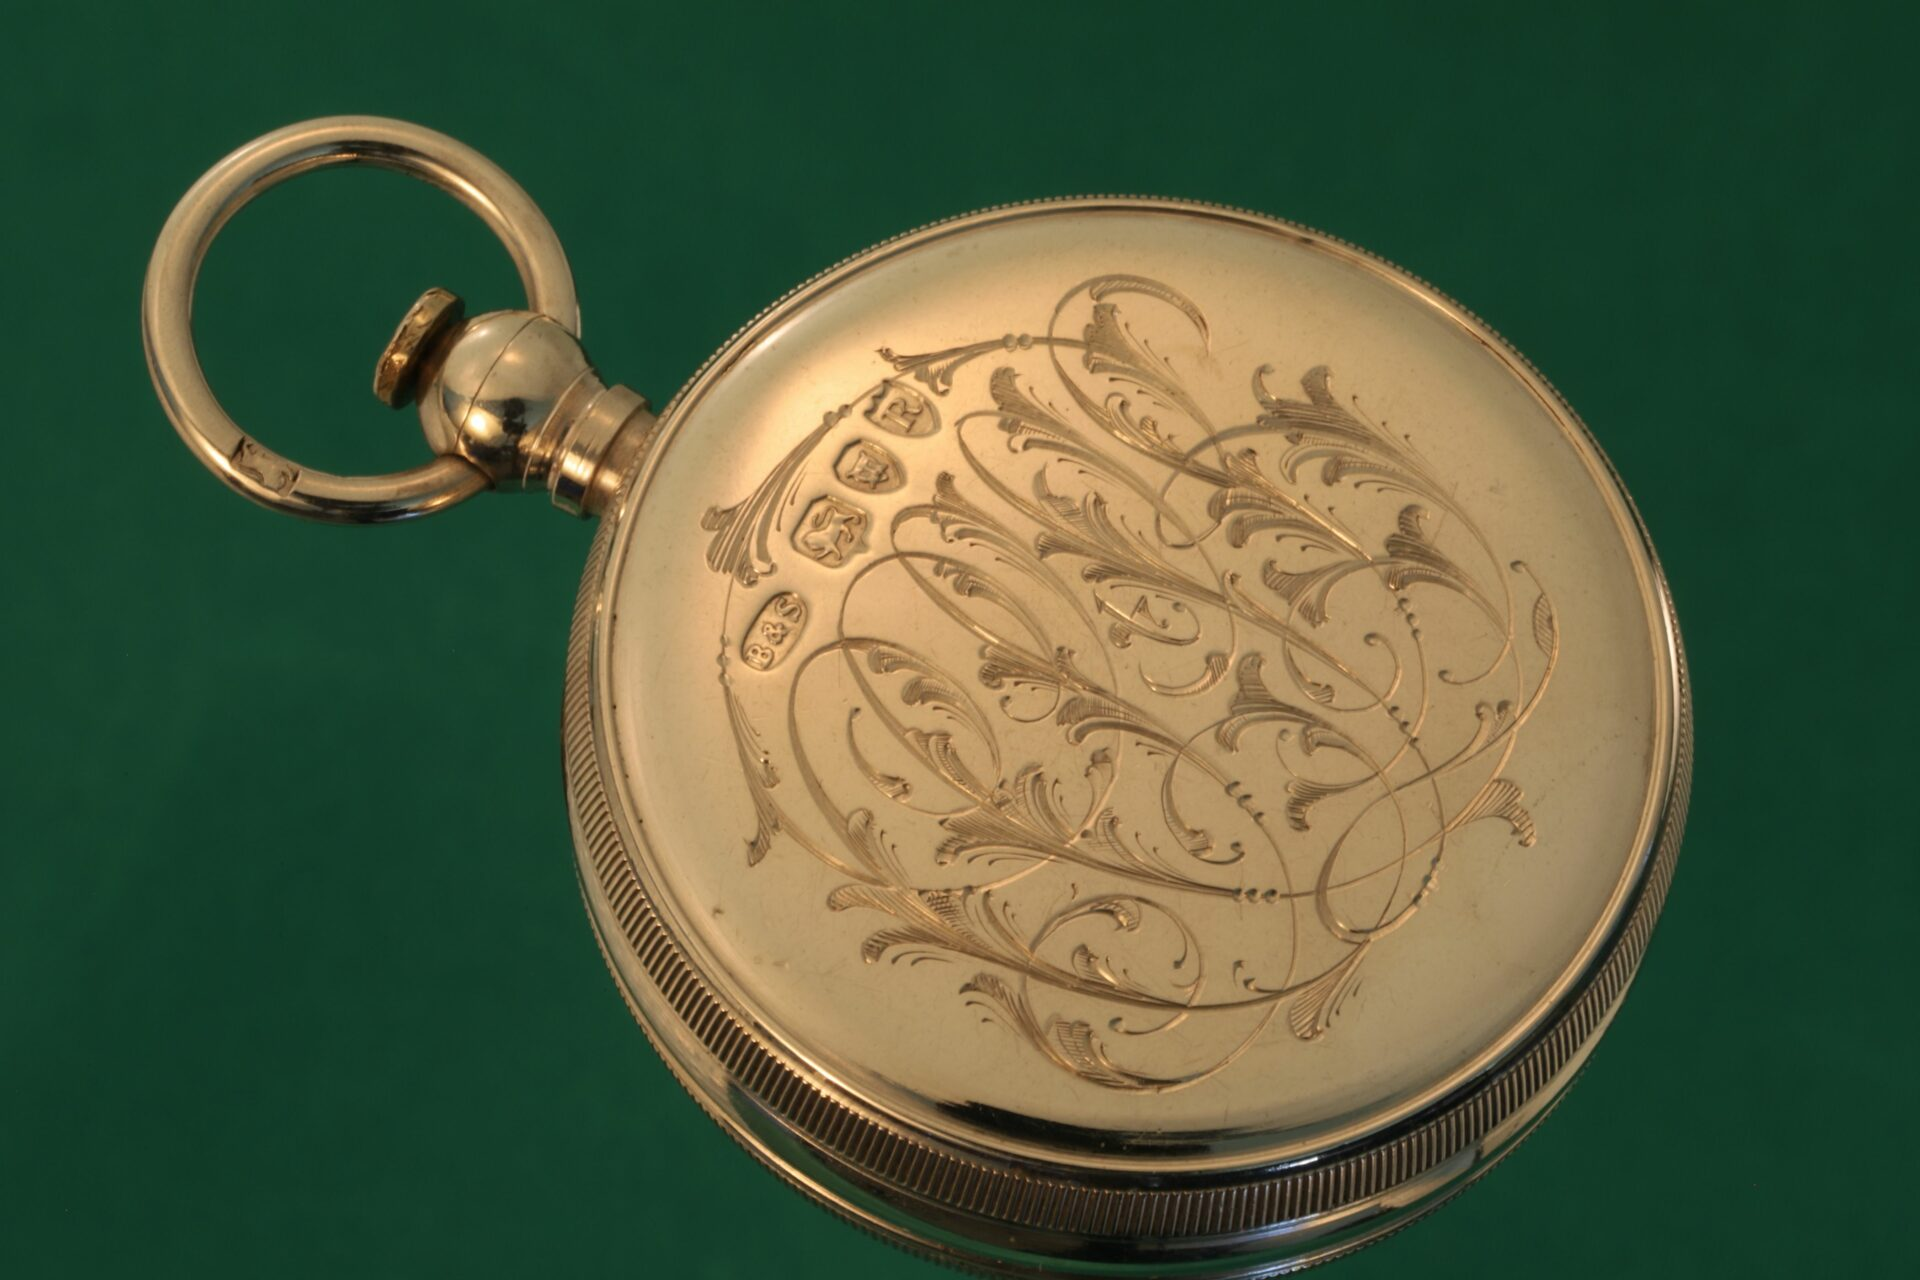 Horizontal image of reverse of compass from Cairns Silver Pocket Barometer Compendium c1892